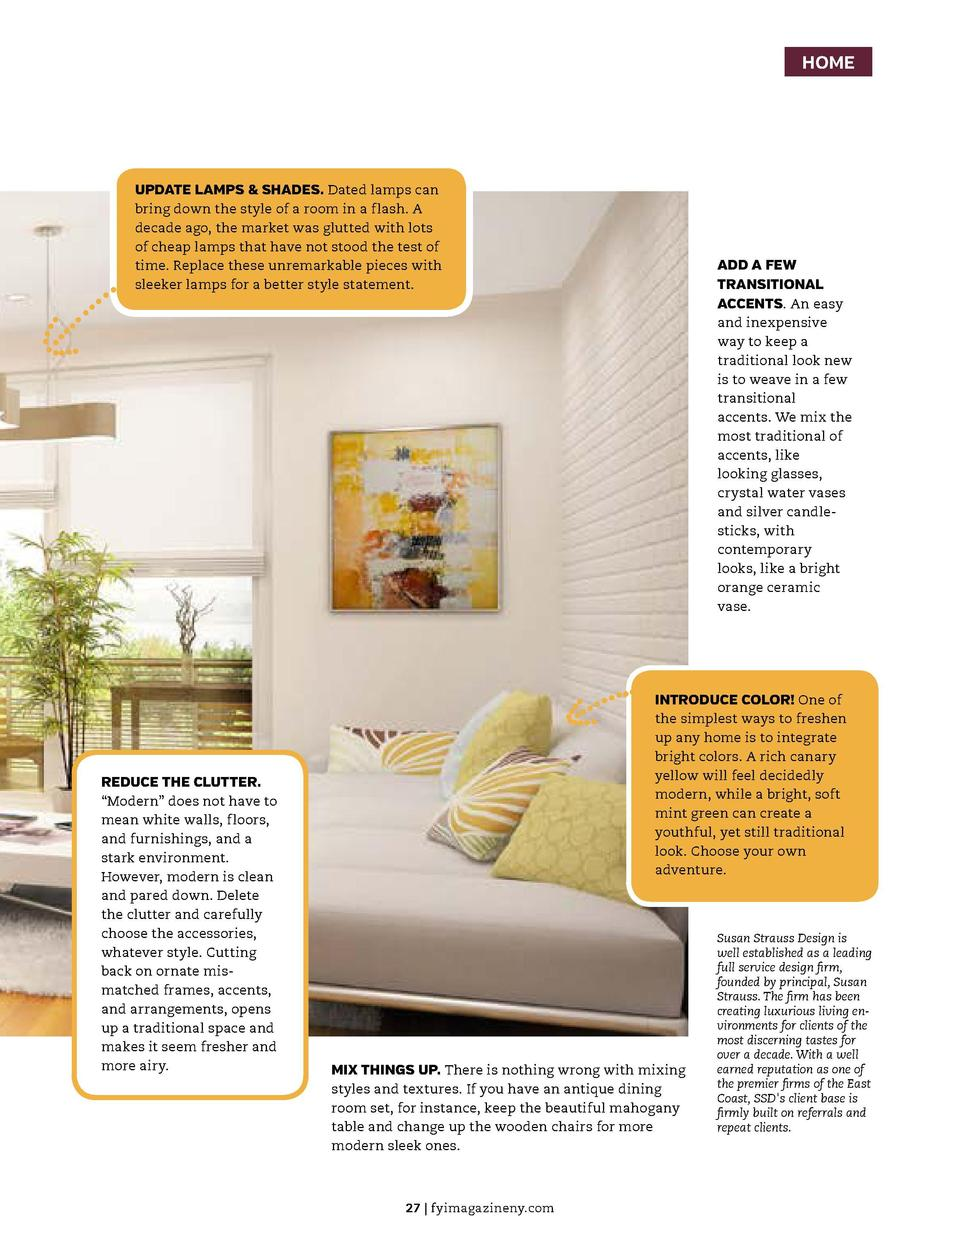 HOME  the beauty guide  How t o  UPDATE LAMPS   SHADES. Dated lamps can bring down the style of a room in a flash. A decad...